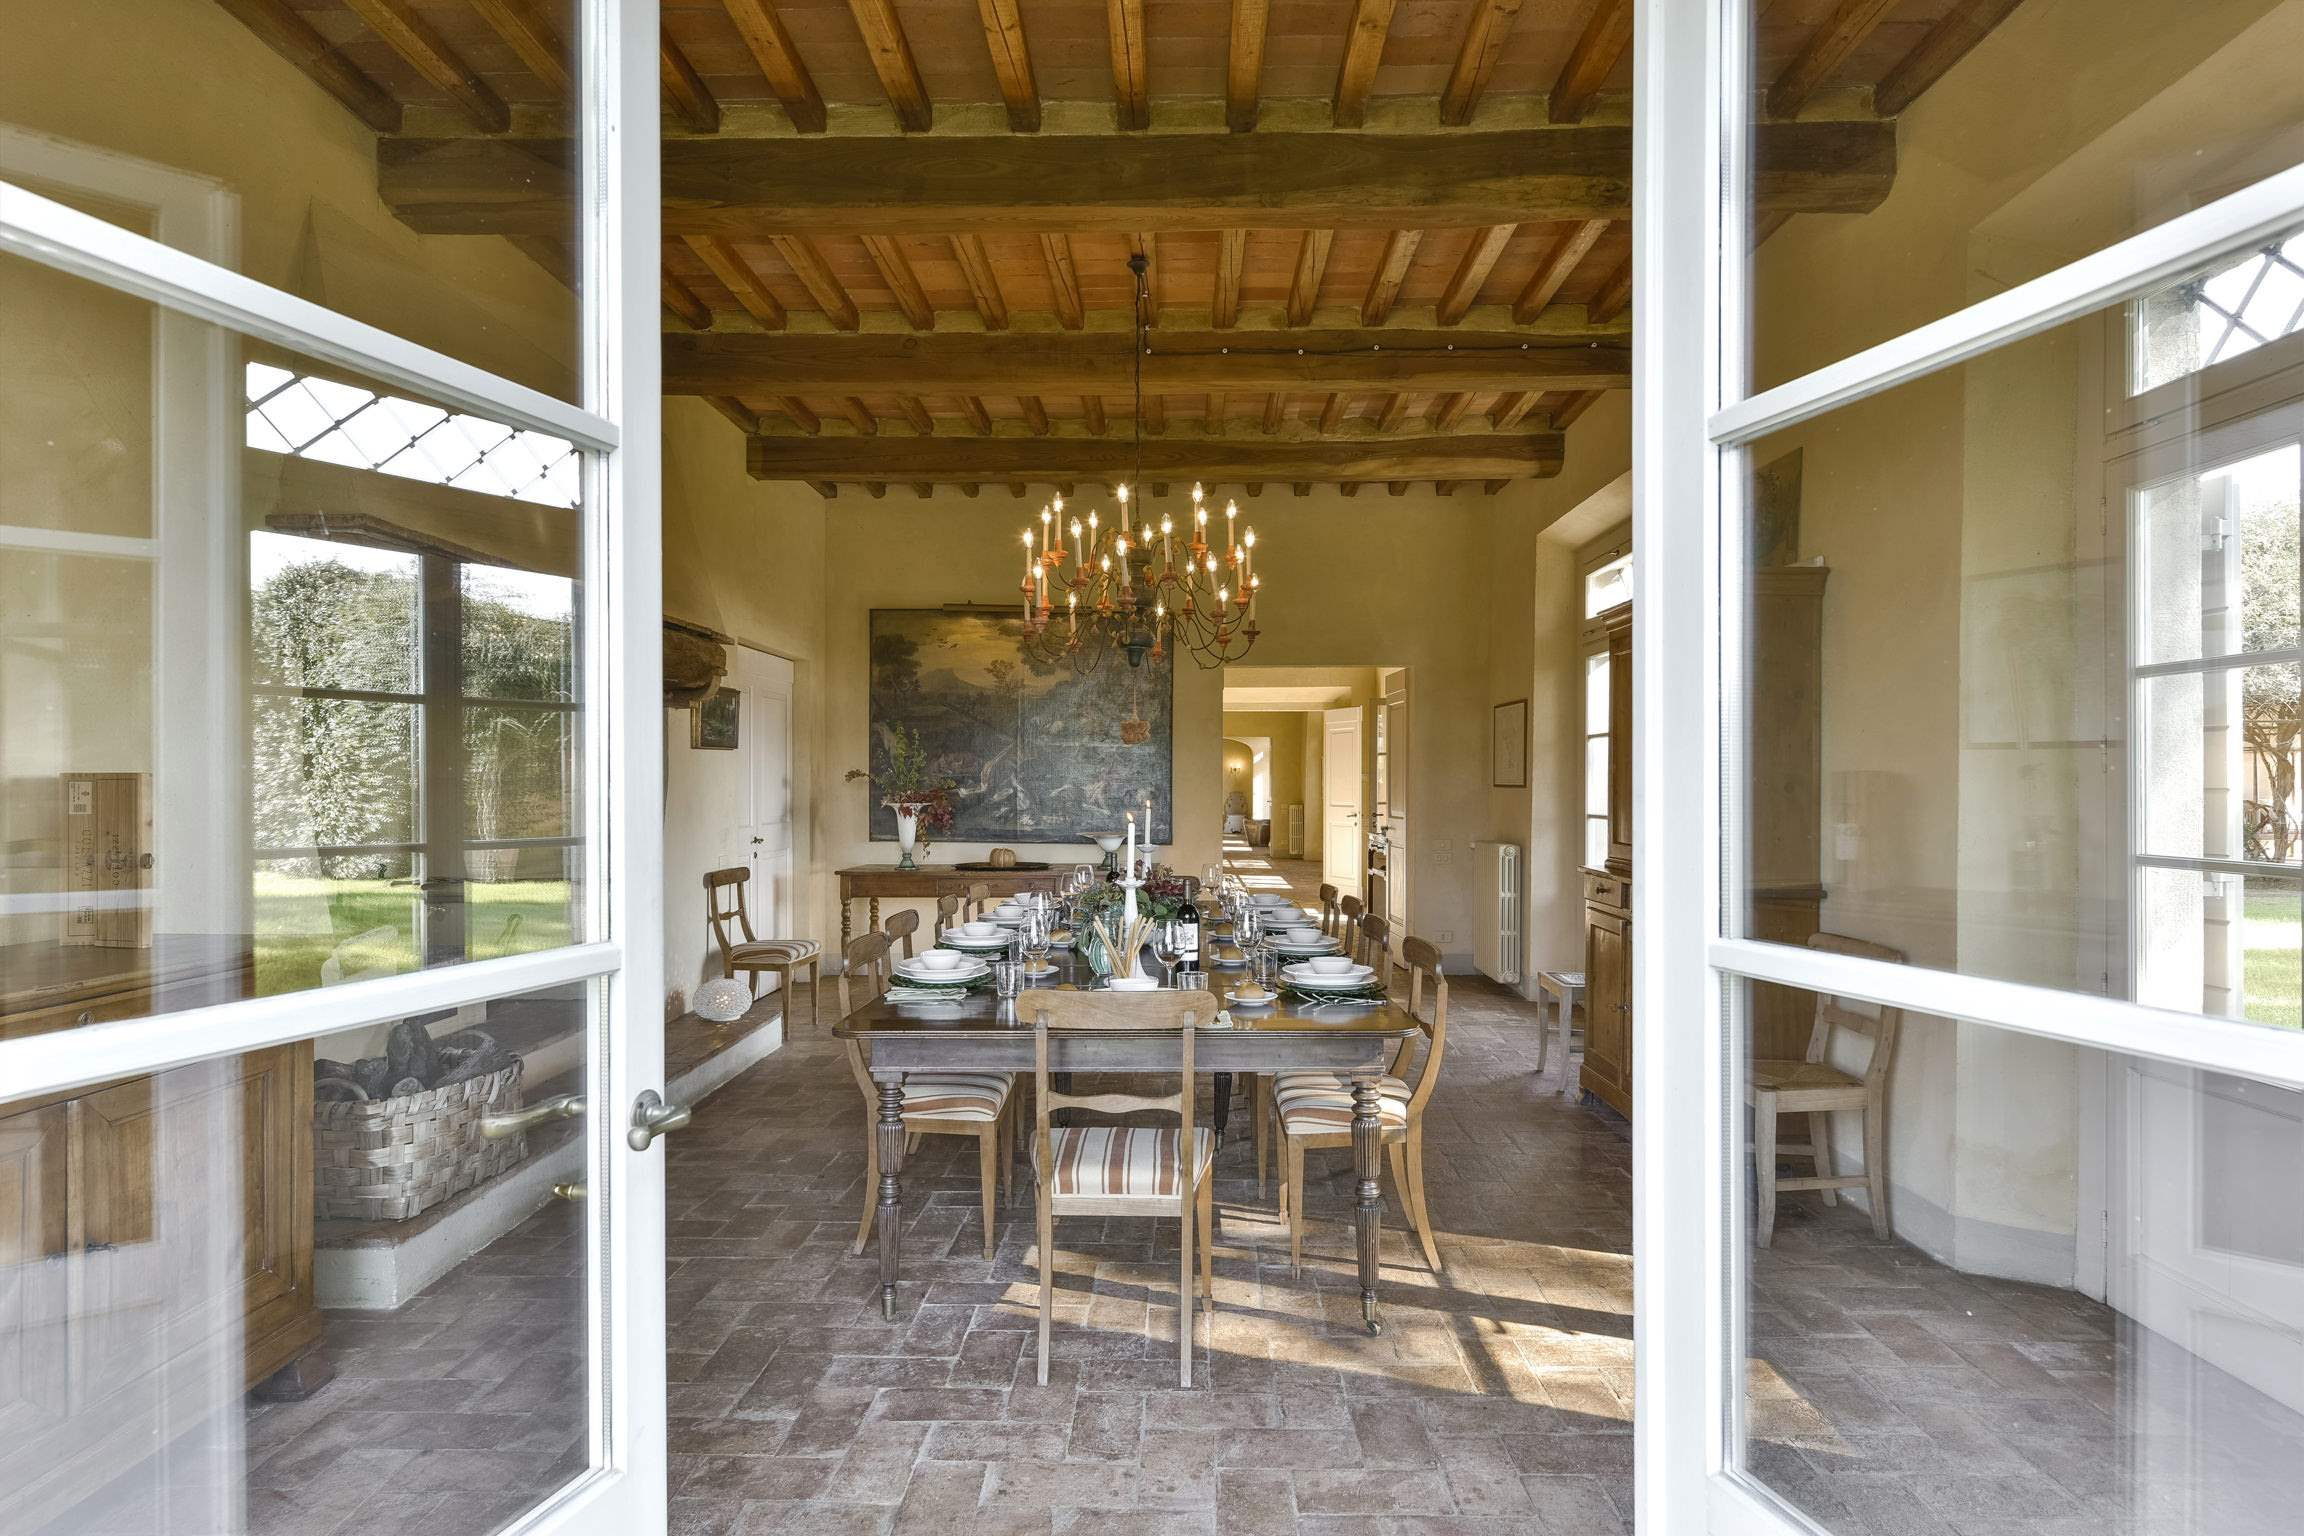 Villa Maremma 1, 7 bedroom villa in South Tuscany - Maremma, Tuscany Photo #5